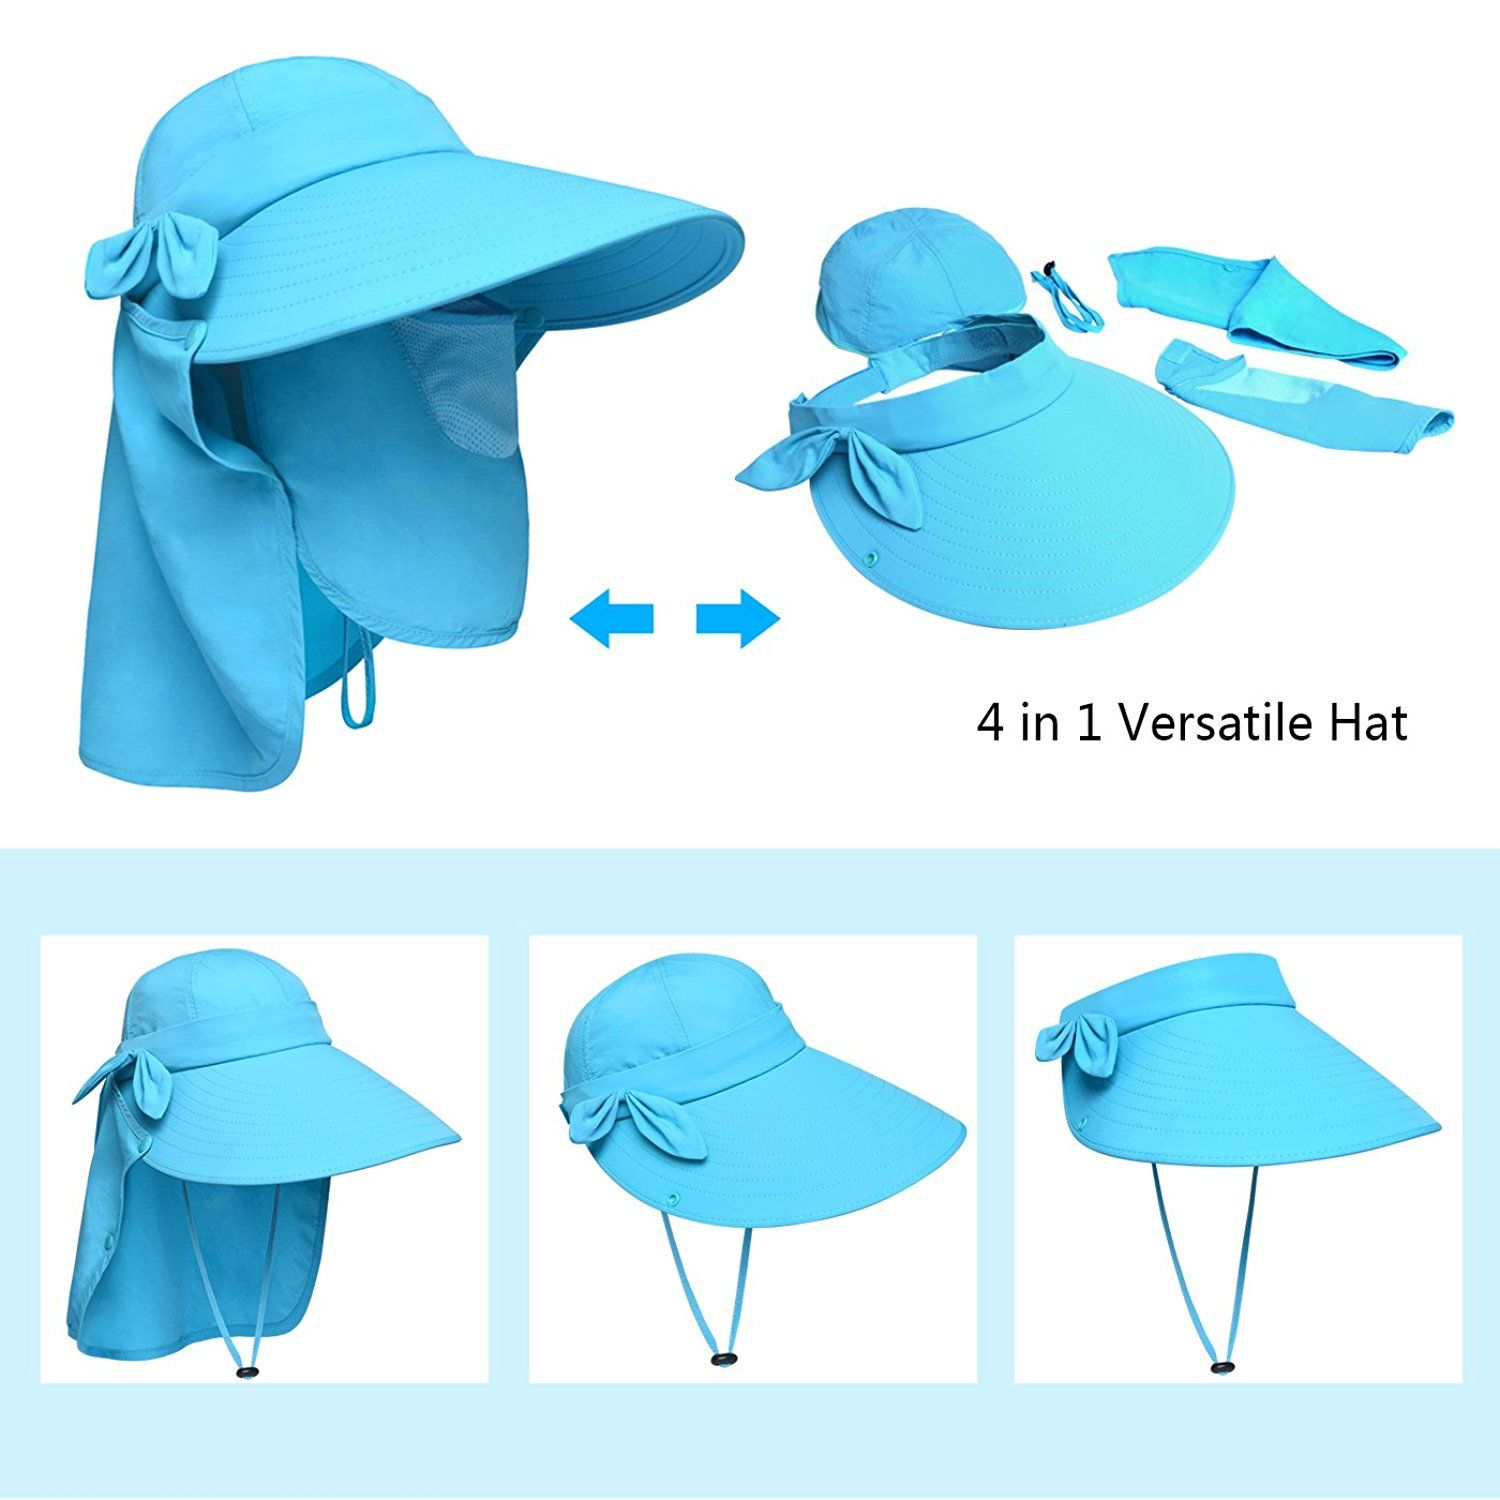 Gifts for Cyclists Men Christmas - Lenikis Women s UPF50 Sun Visor Foldable  Wide Brimmed UV Protection Hat with Detachable Flaps   Want to know more 58d16dddad56